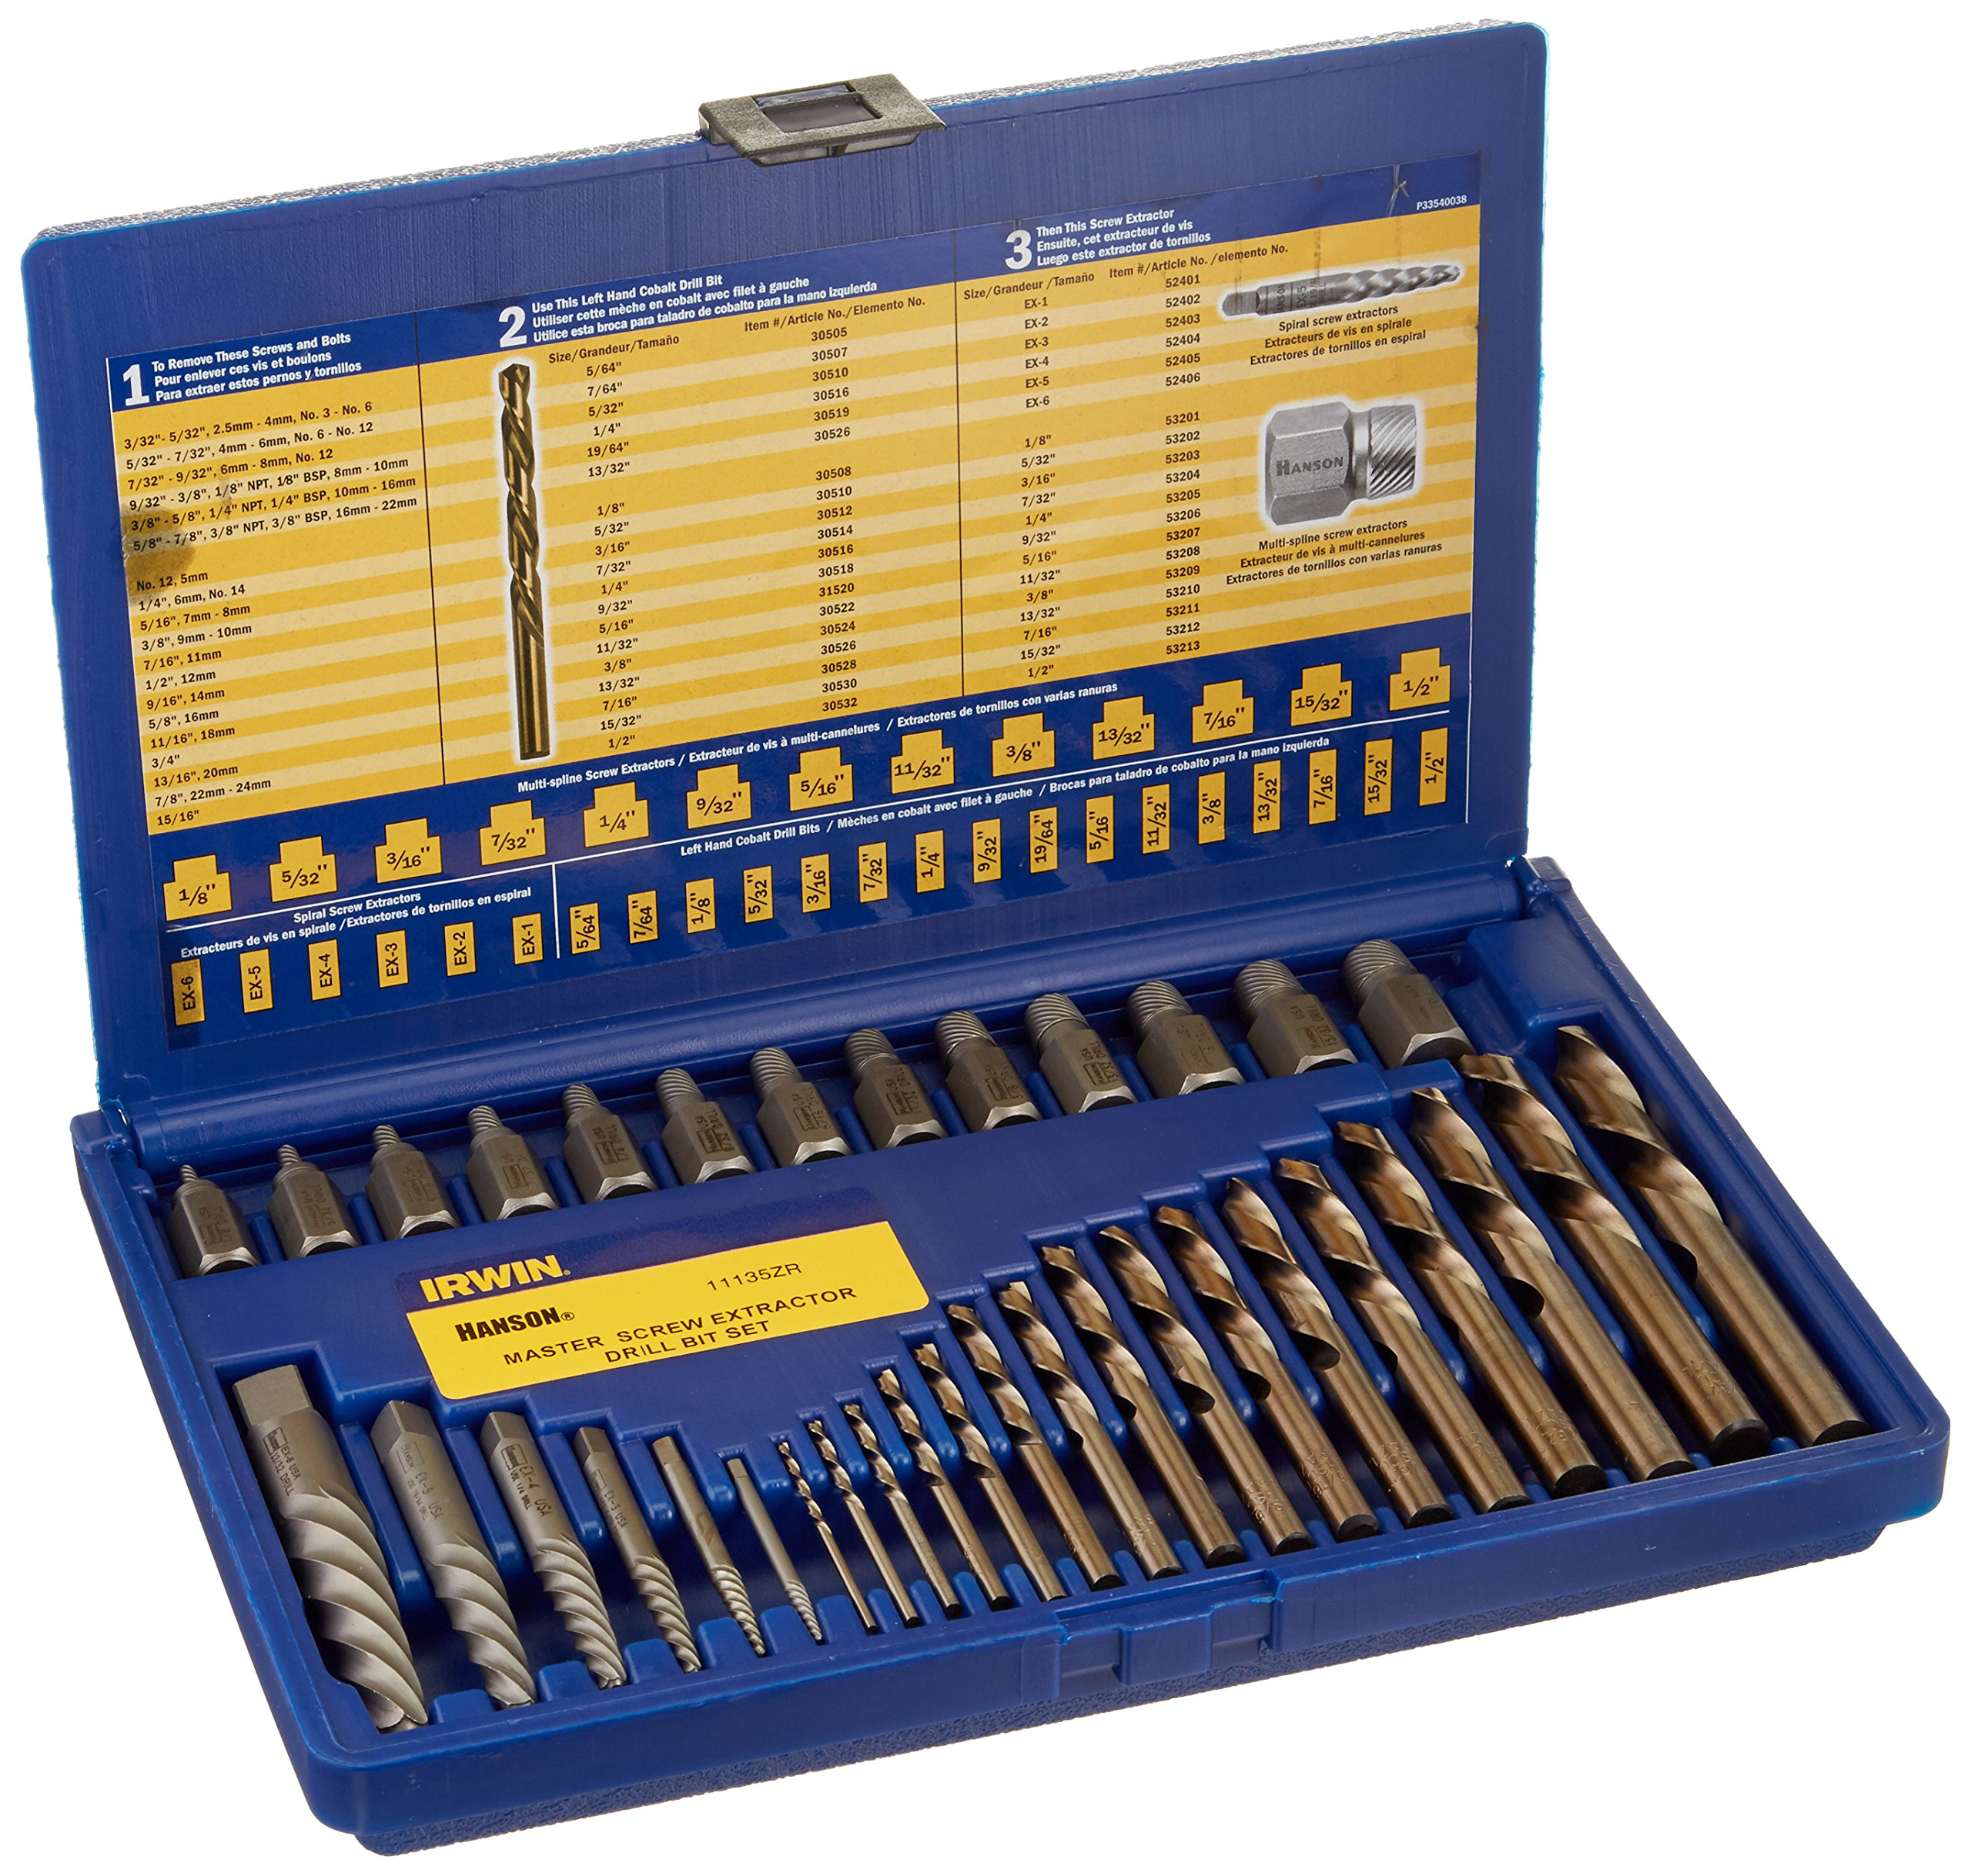 IRWIN HANSON Screw Extractor and Drill Bit Set, 35 Piece, 11135ZR by Irwin Tools